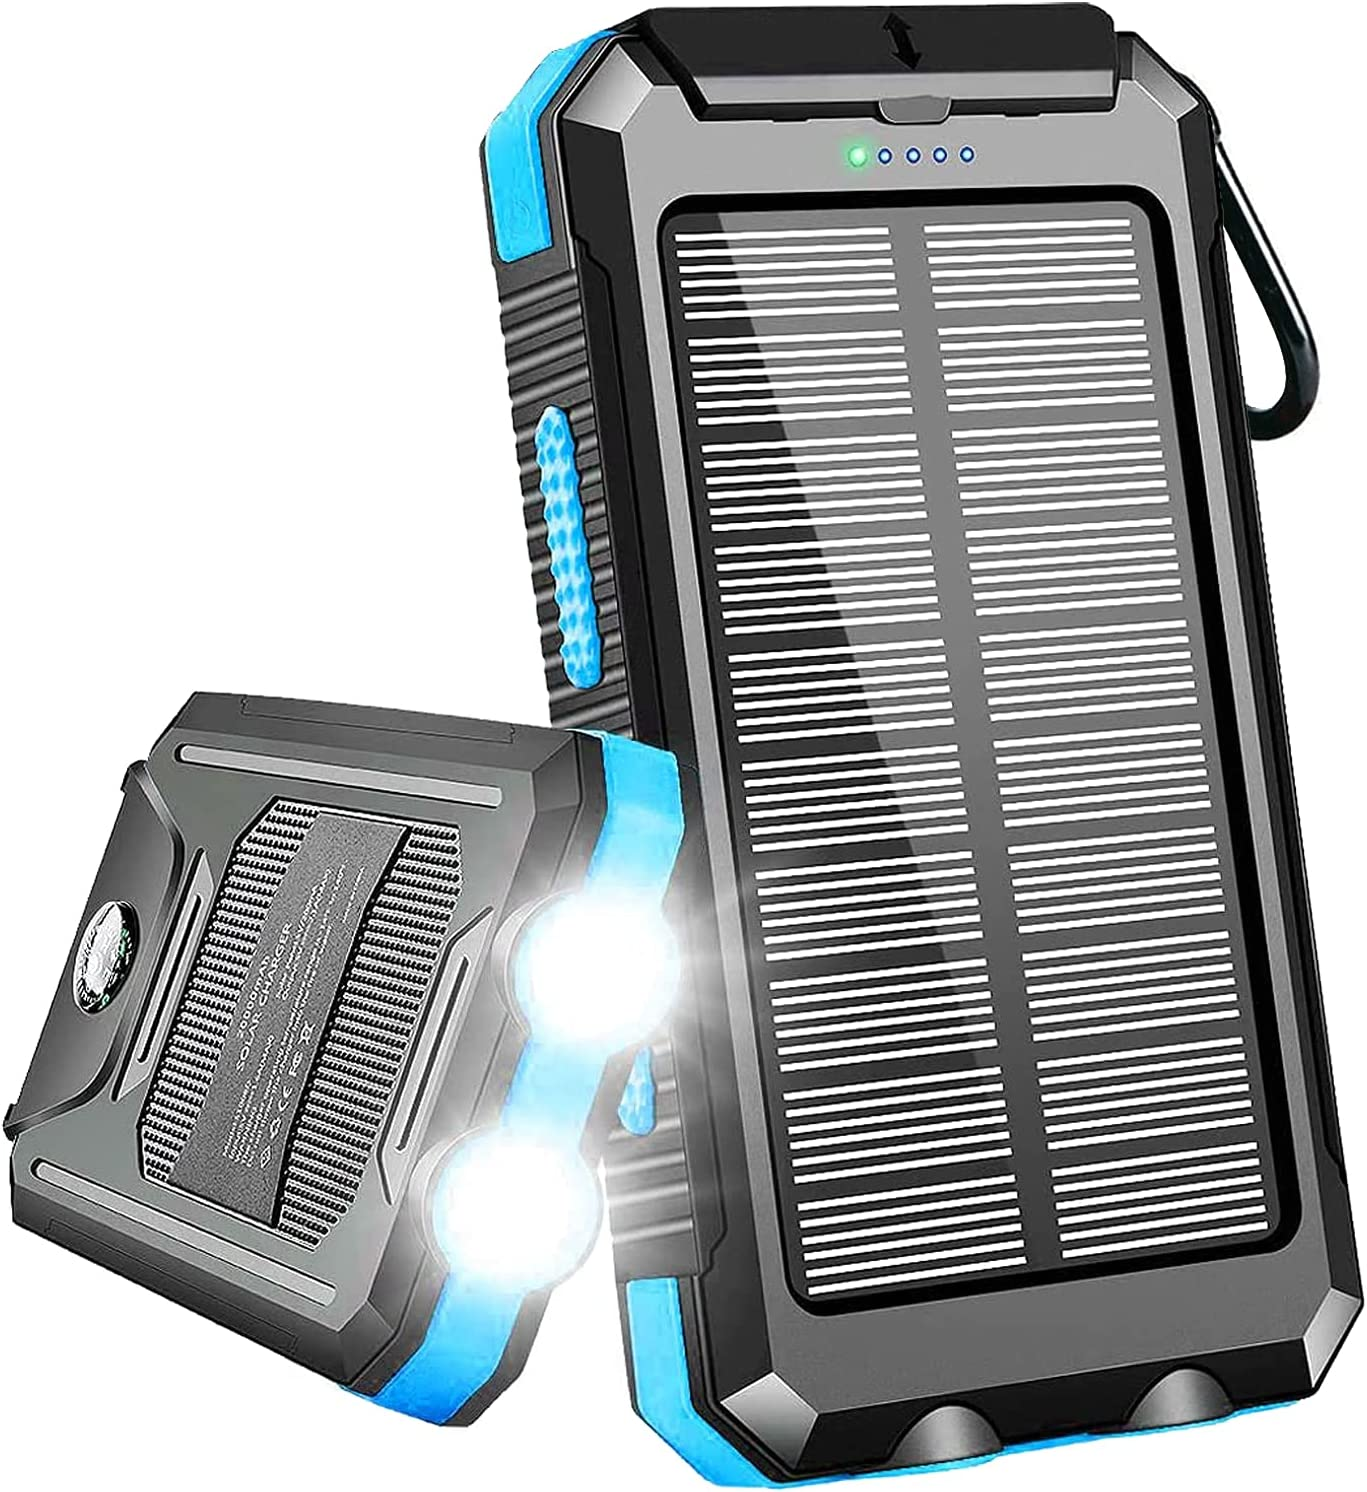 Solar New product! New type Charger 20000mAh Portable Power O Award-winning store Dual Bank USB with